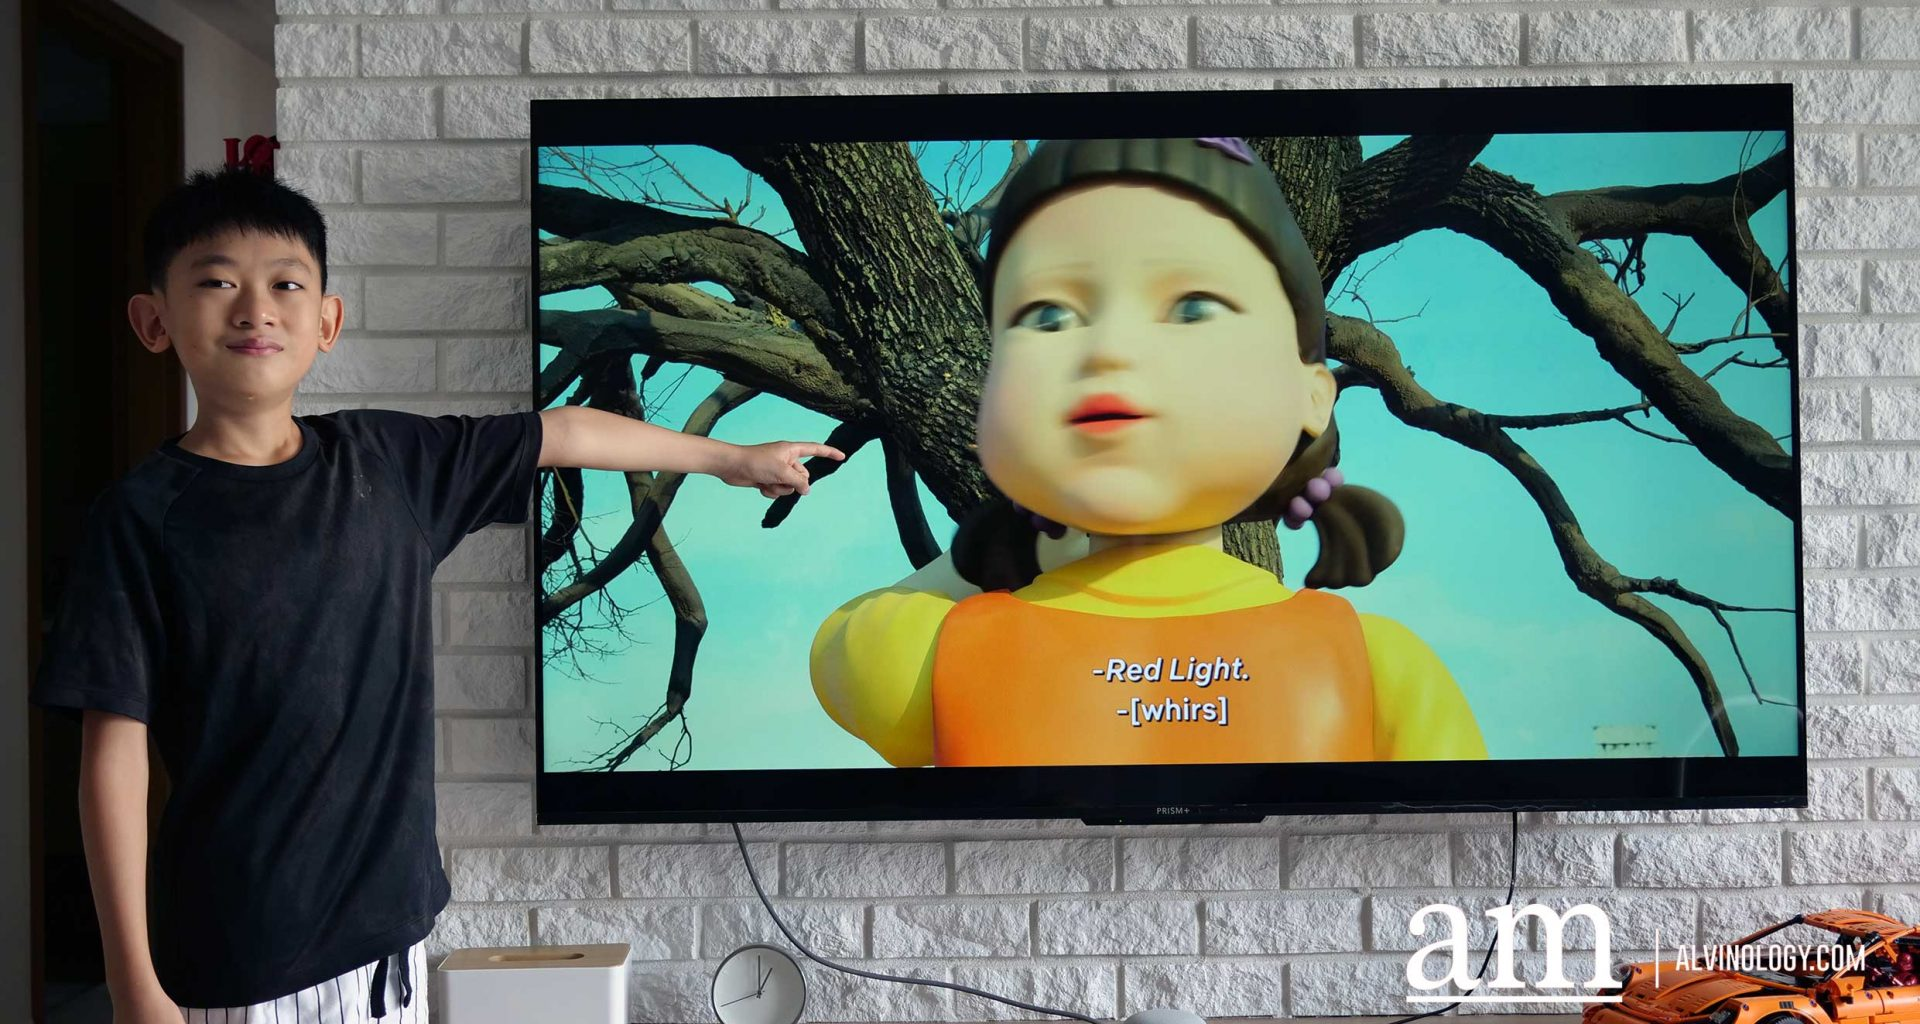 [#Supportlocal] A Good Deal just got bigger - With A Promotional Price Of S$1,239, PRISM+ Q65-QE PRO, 65″ 4k Android TV, Blows Competitors Away - Alvinology